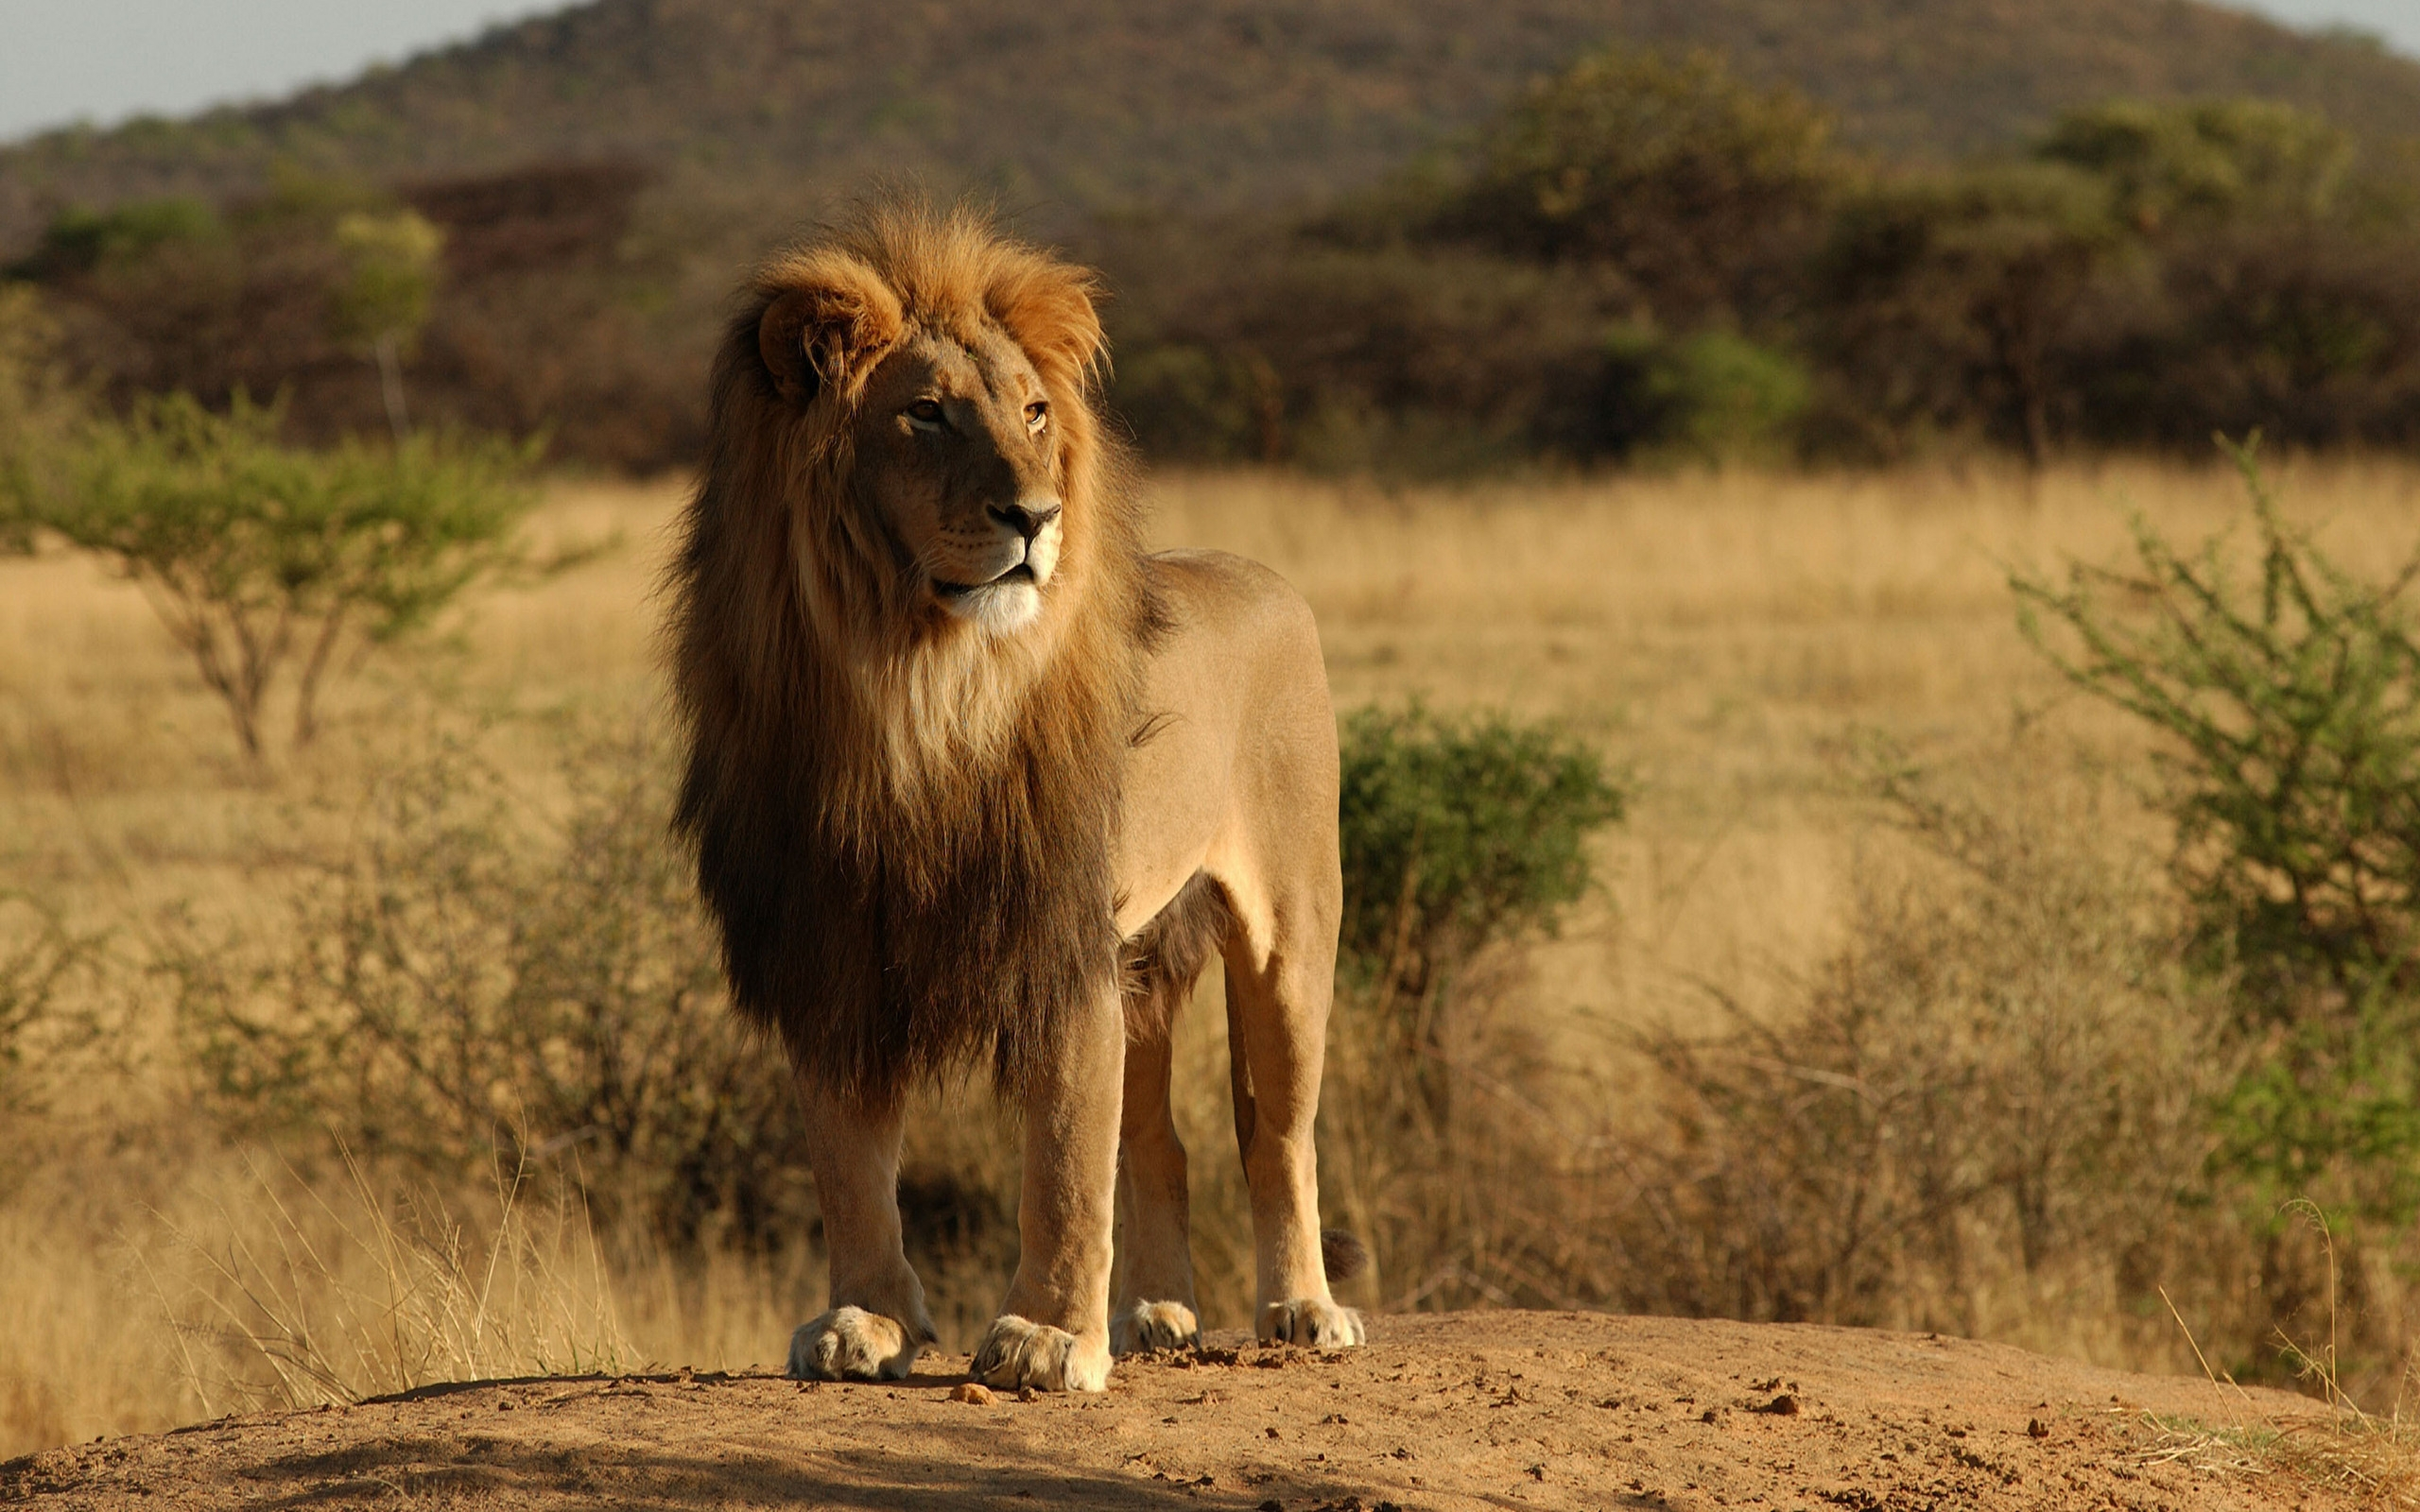 32341 download wallpaper Lions, Animals screensavers and pictures for free